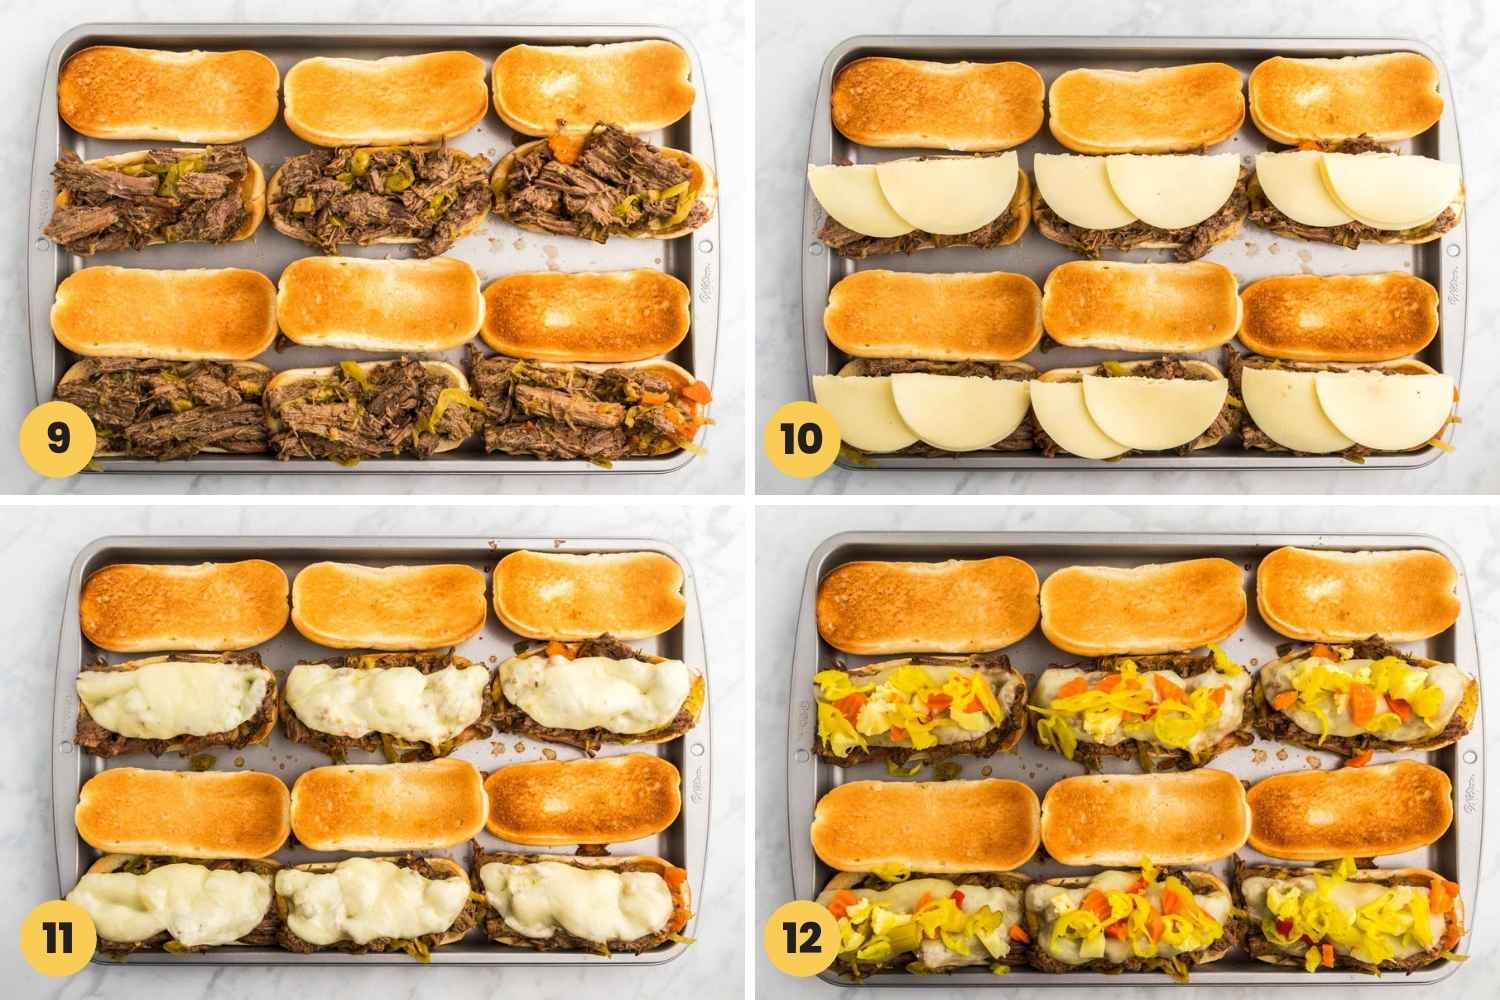 How To Make Italian Beef sandwiches shown in a collage with 4 images